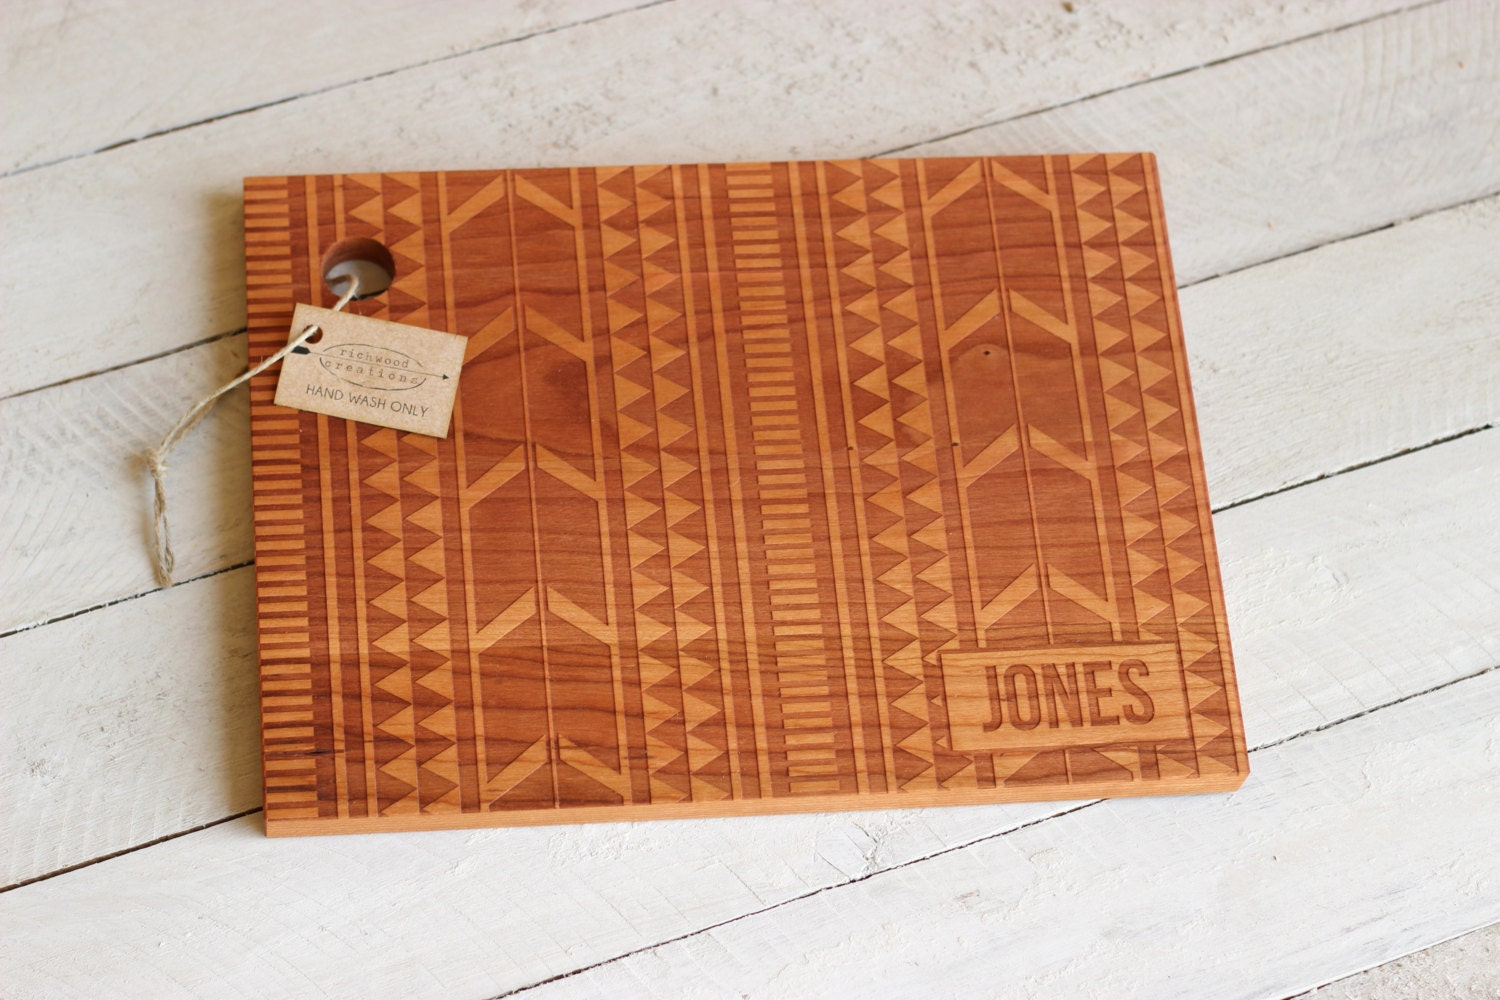 Wood Craft Desain And Project: Buy Custom Cutting Board Plans